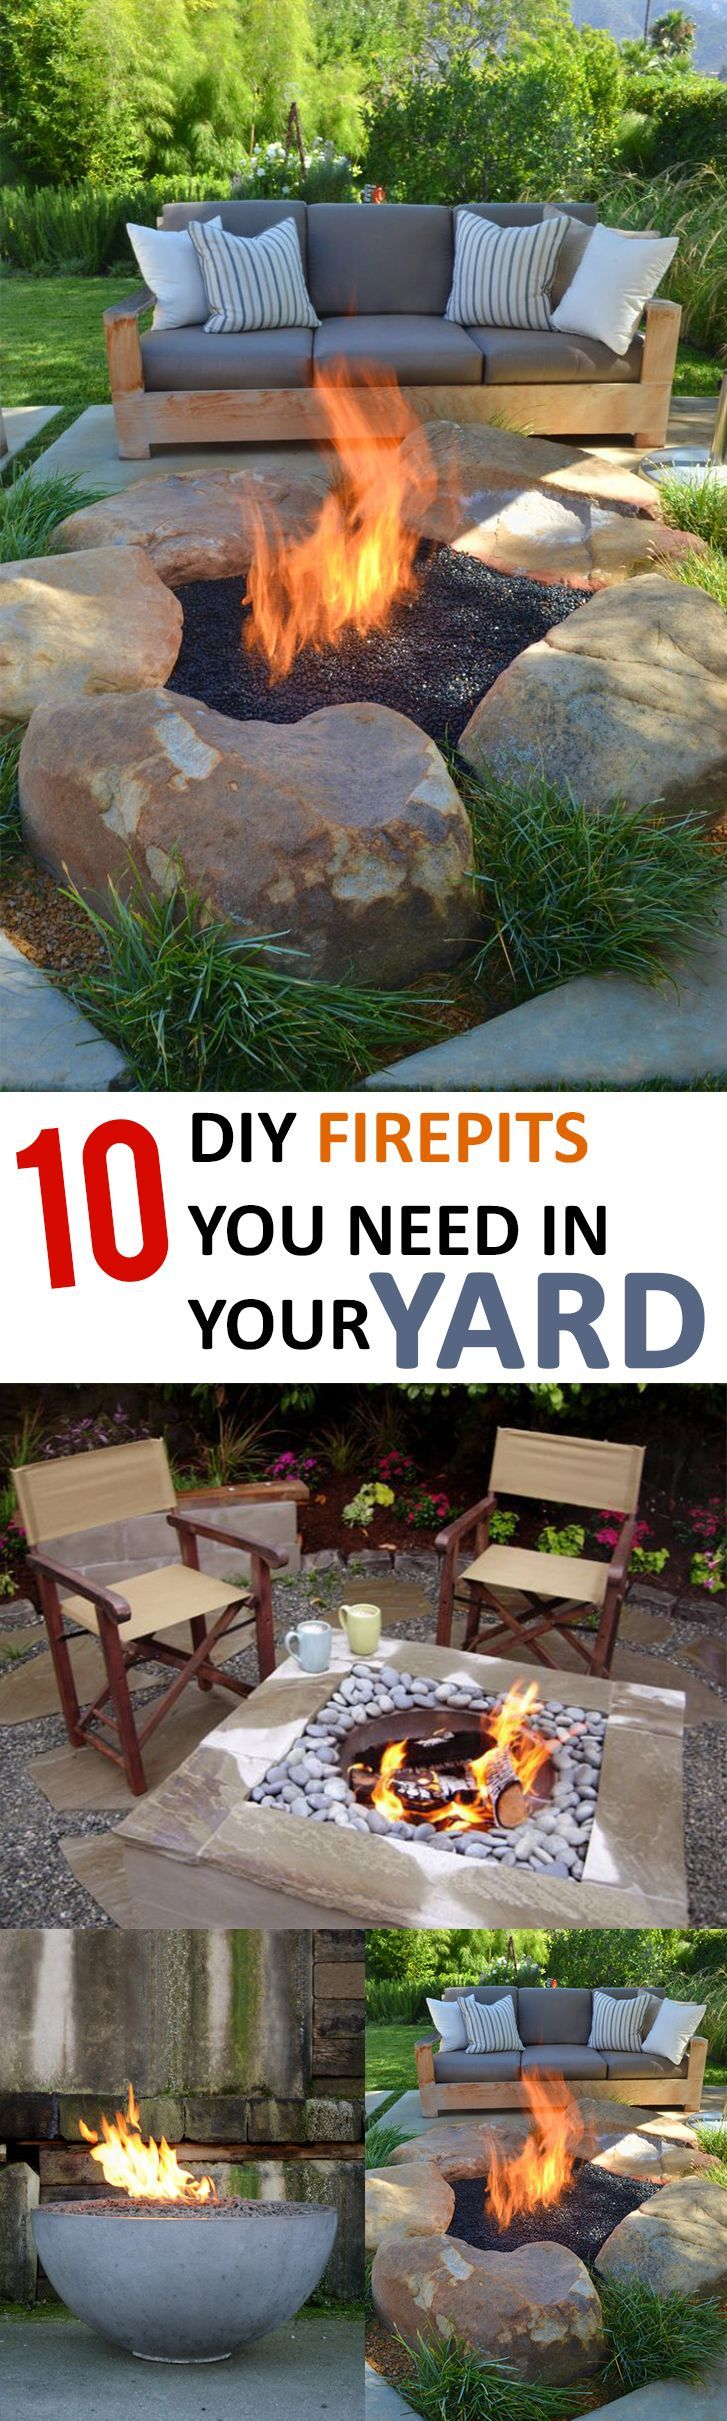 Amazing fire pit ideas that you will want for your yard!-Firepits are no longer ...